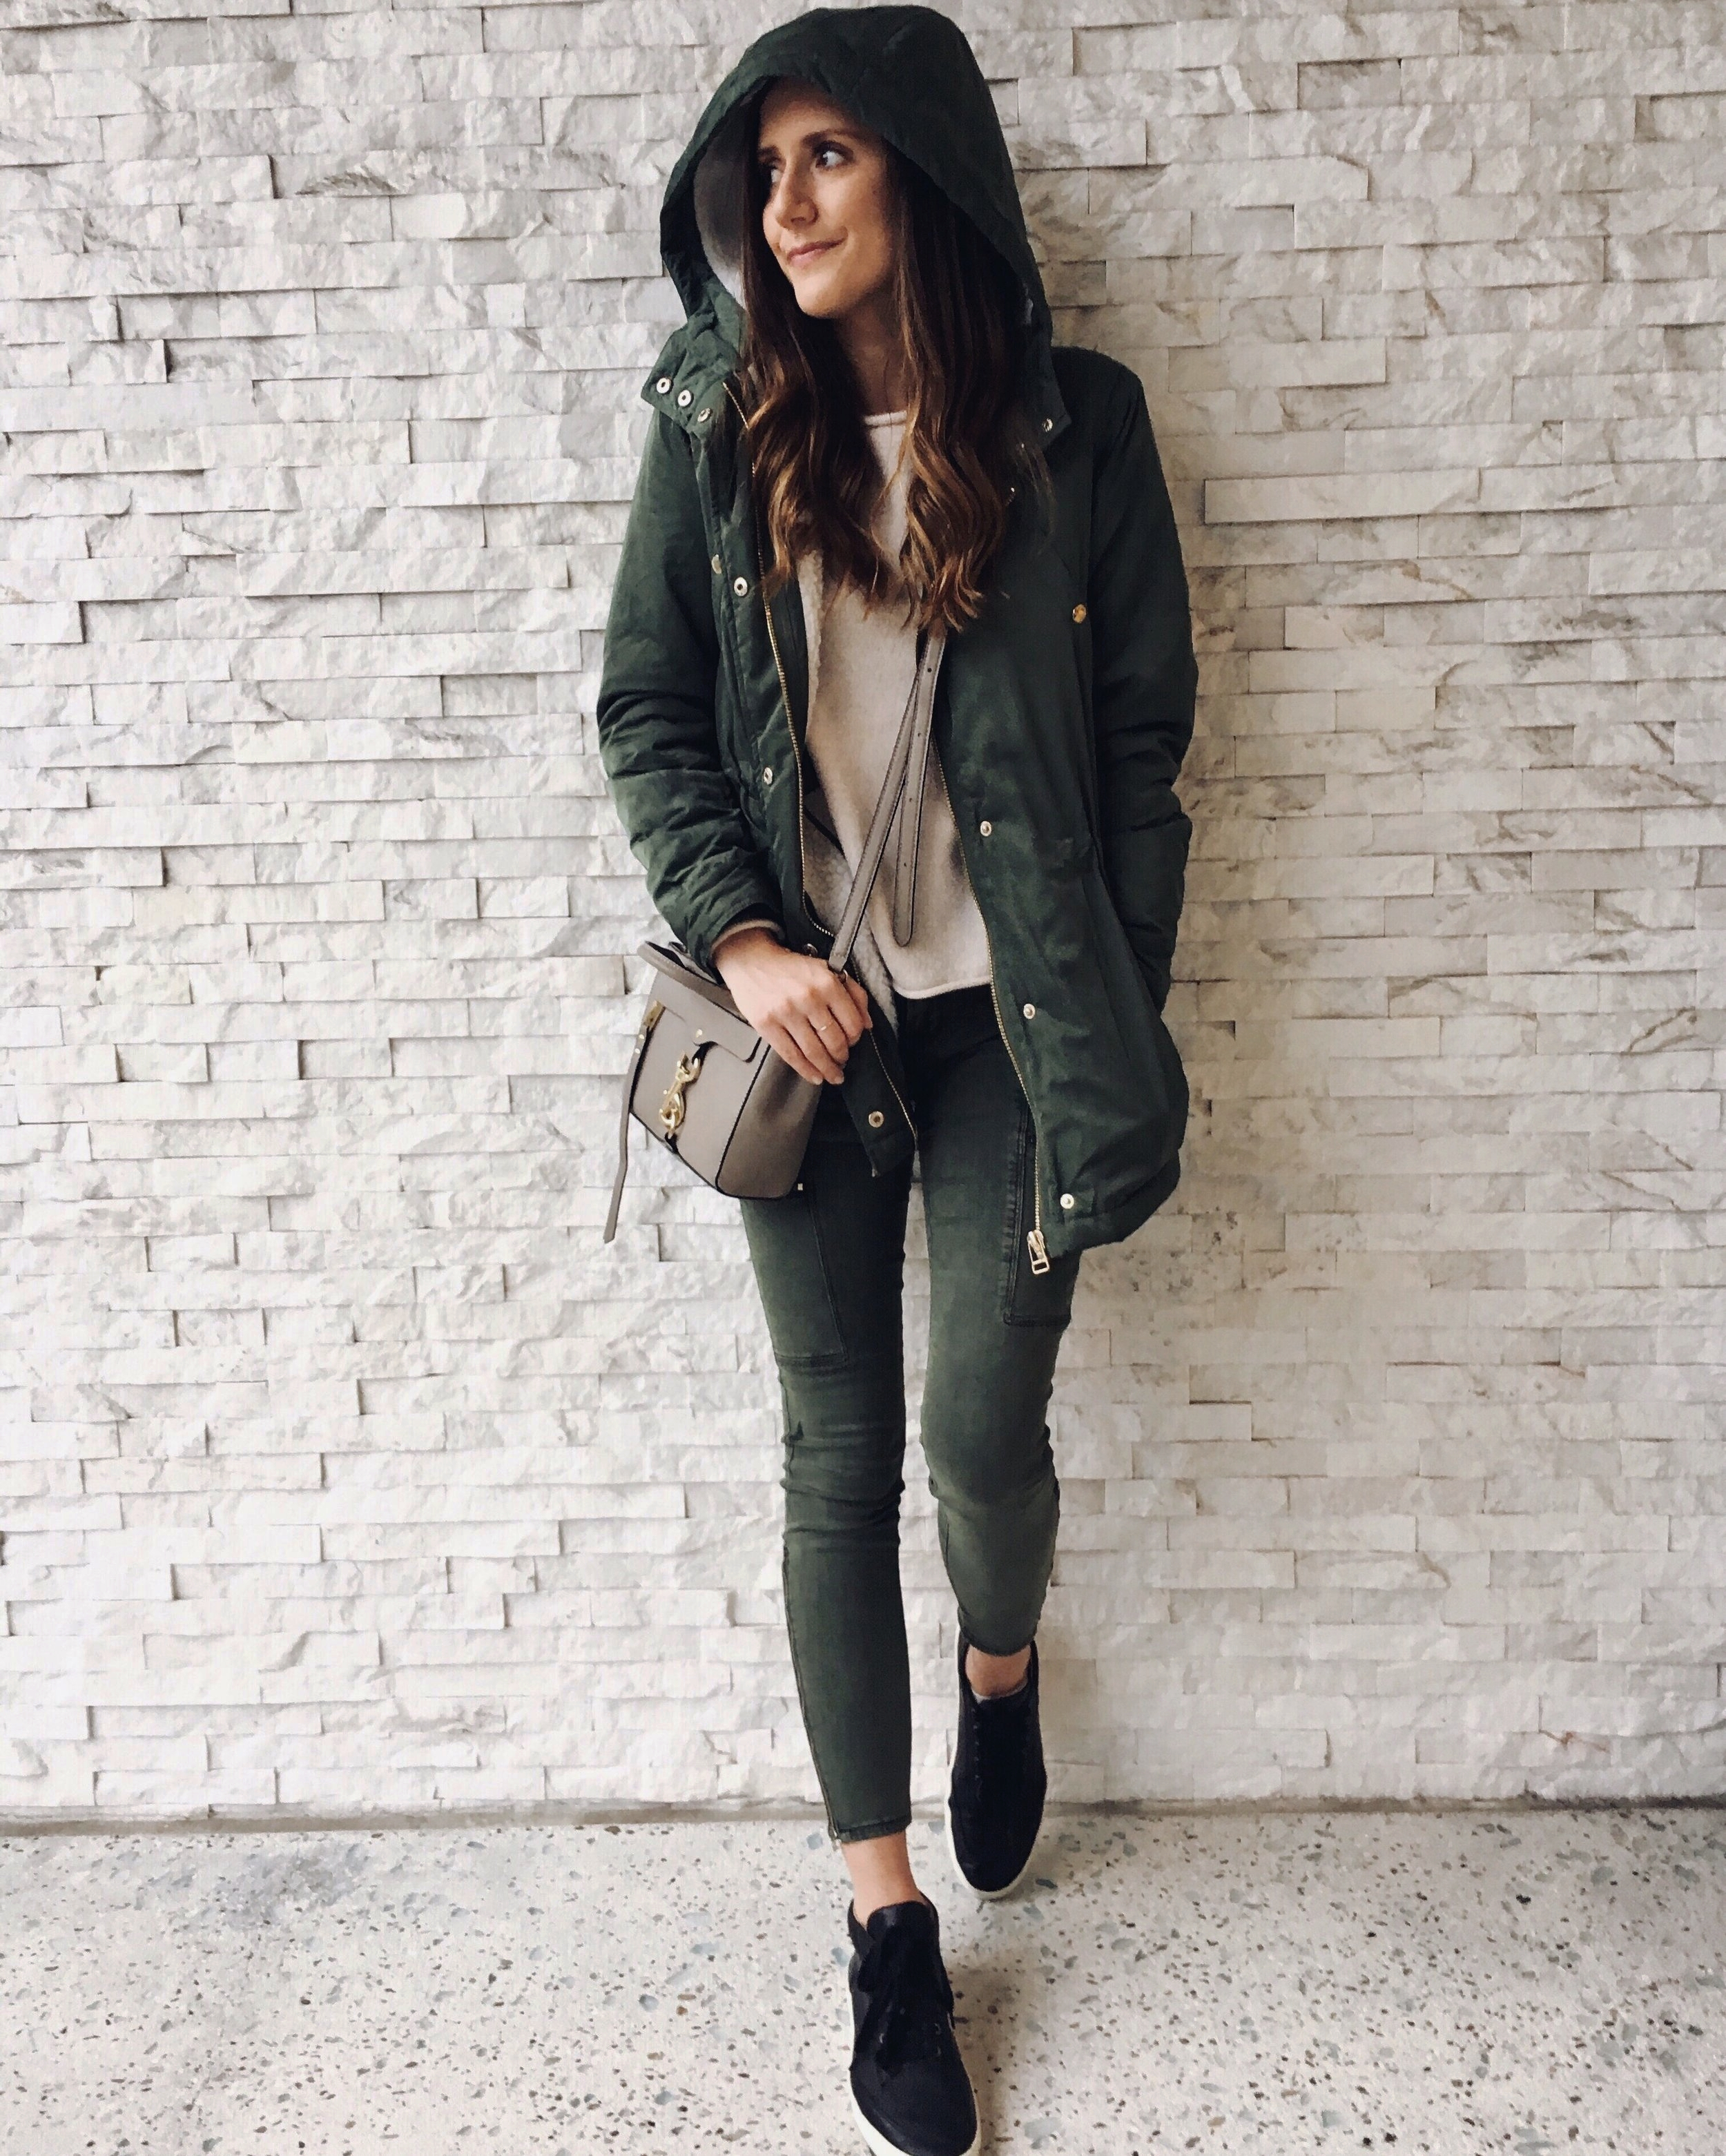 Shop the Look Below.  ASOS sweater  |  Stitch Fix  jeans—similar  here  | Via Spiga Shoes—similar  here  |  Forever 21 Jacket  |  Rebecca Minkoff bag